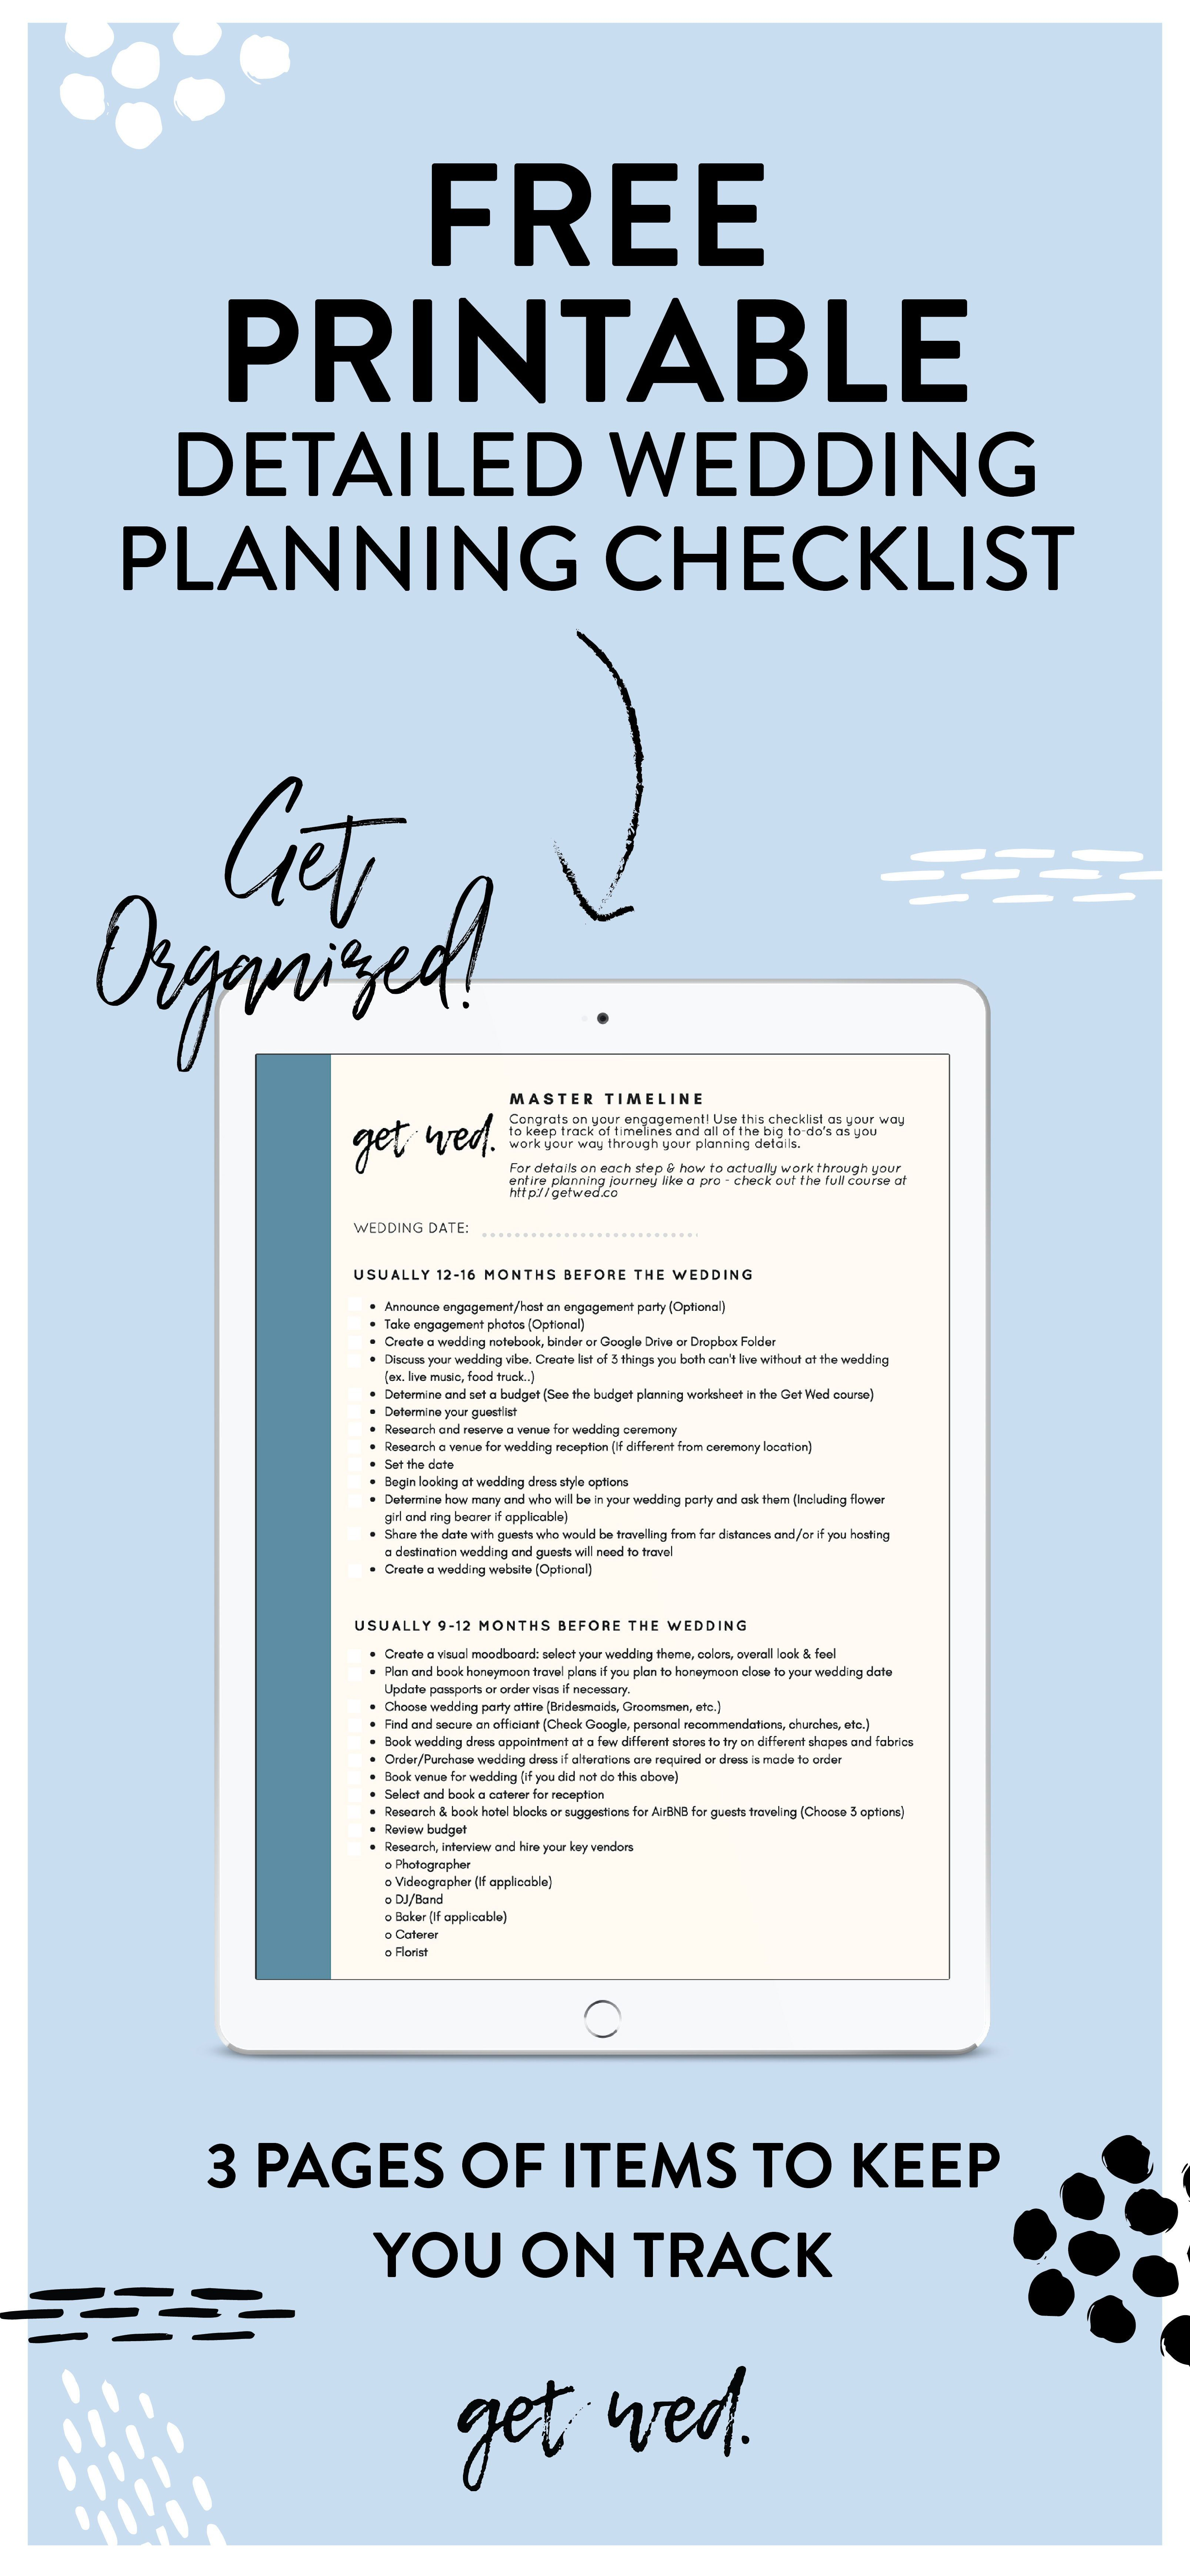 Stay Organized With This Free Printable Wedding Planning Checklist Three Pages Of Details So